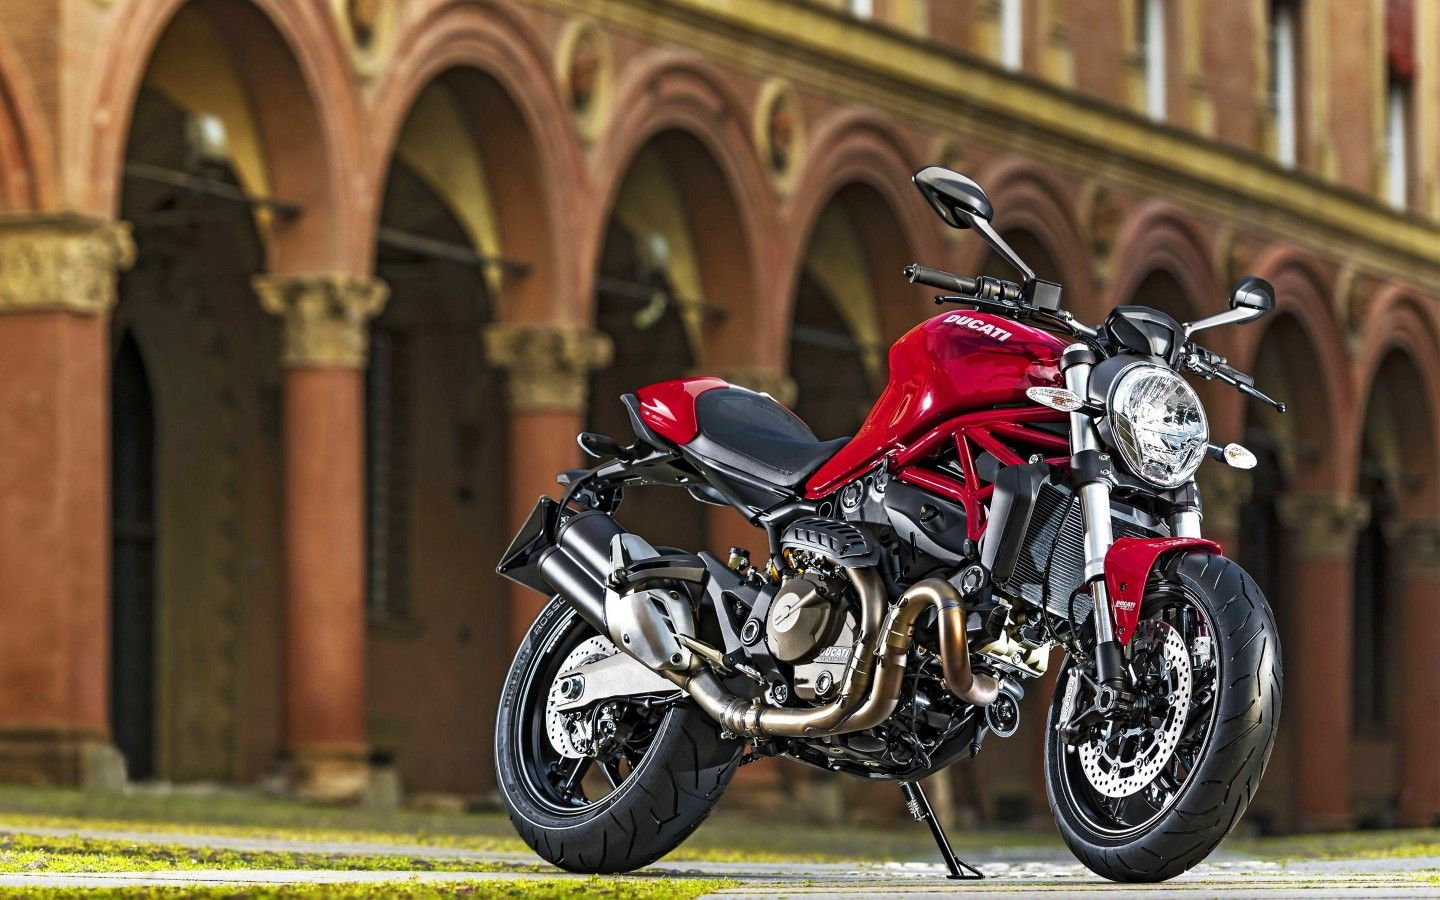 Ducati Monster 821 Hd New Wallpaper Ducati Monster Ducati Monster 1100 Ducati